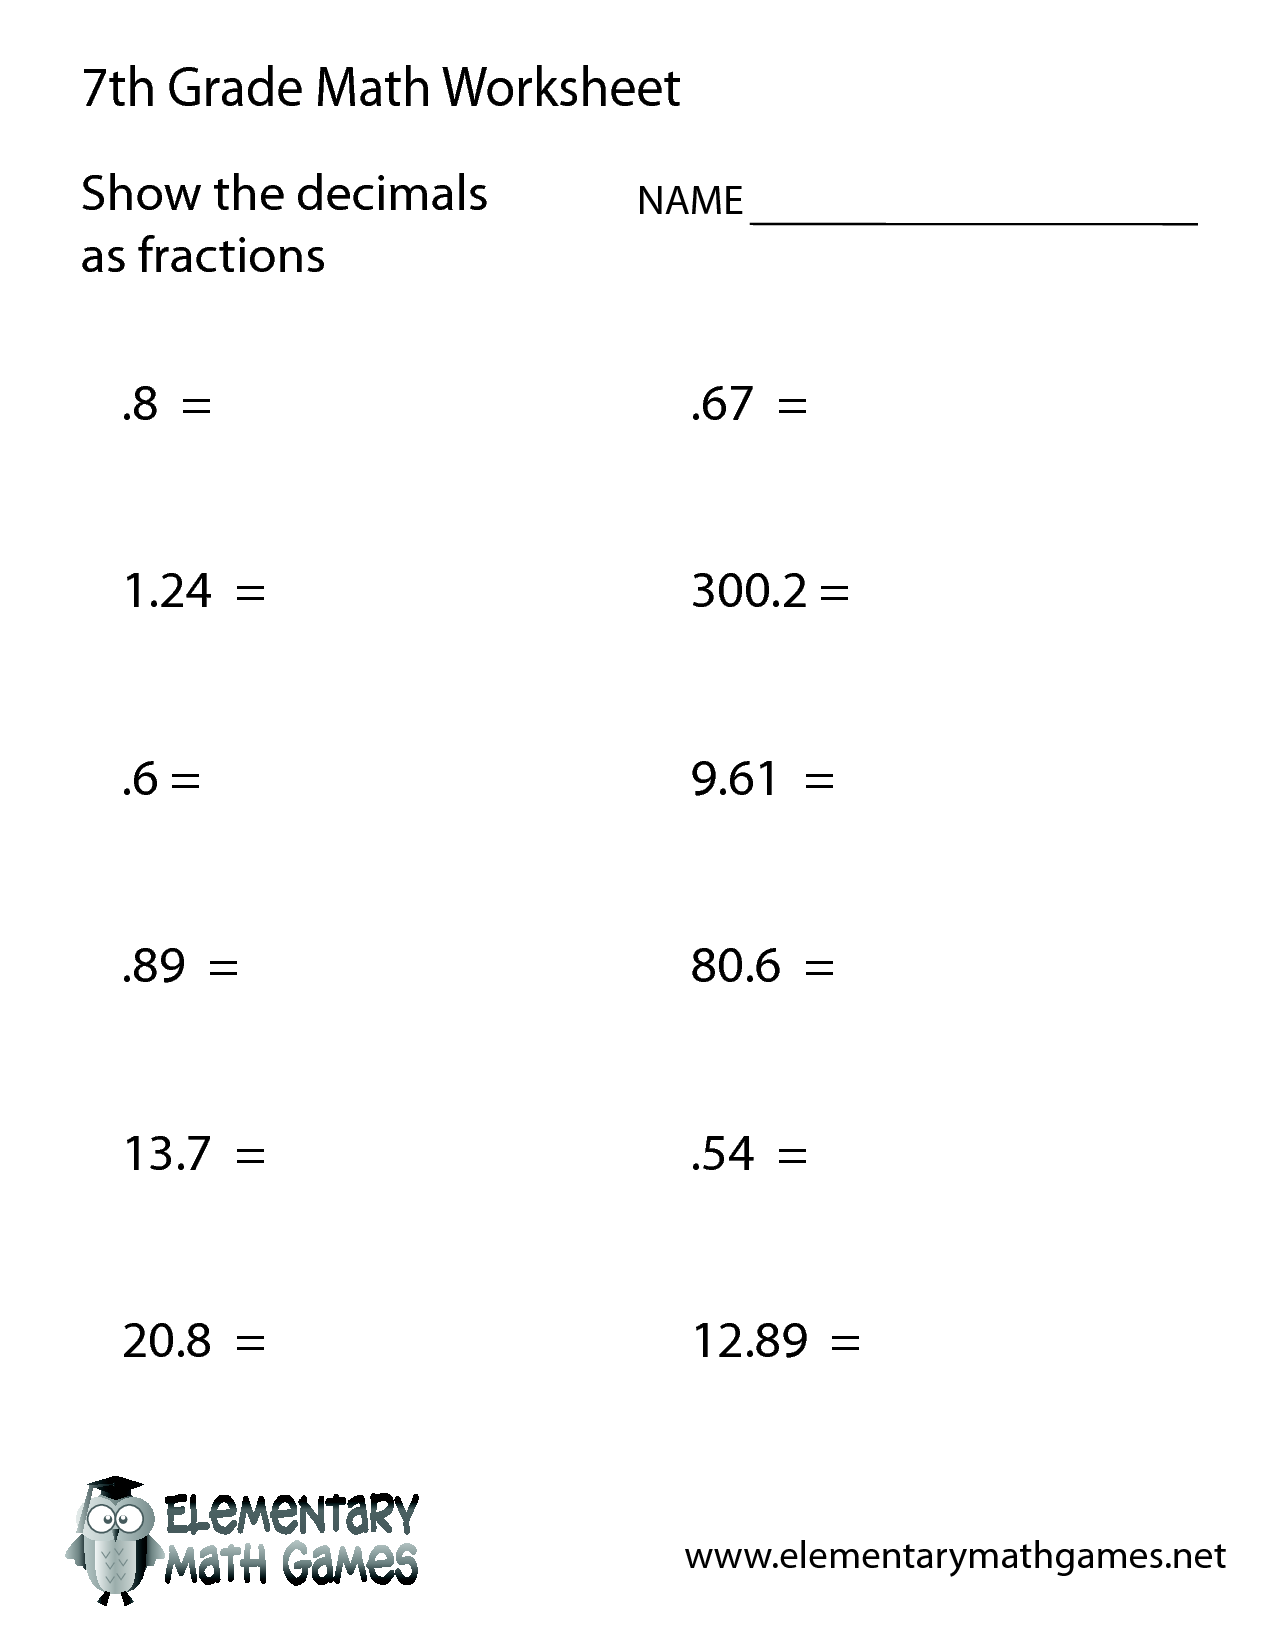 Printables Math Problems For 7th Graders Worksheets worksheet math problems for 7th graders worksheets eetrex free grade online graders